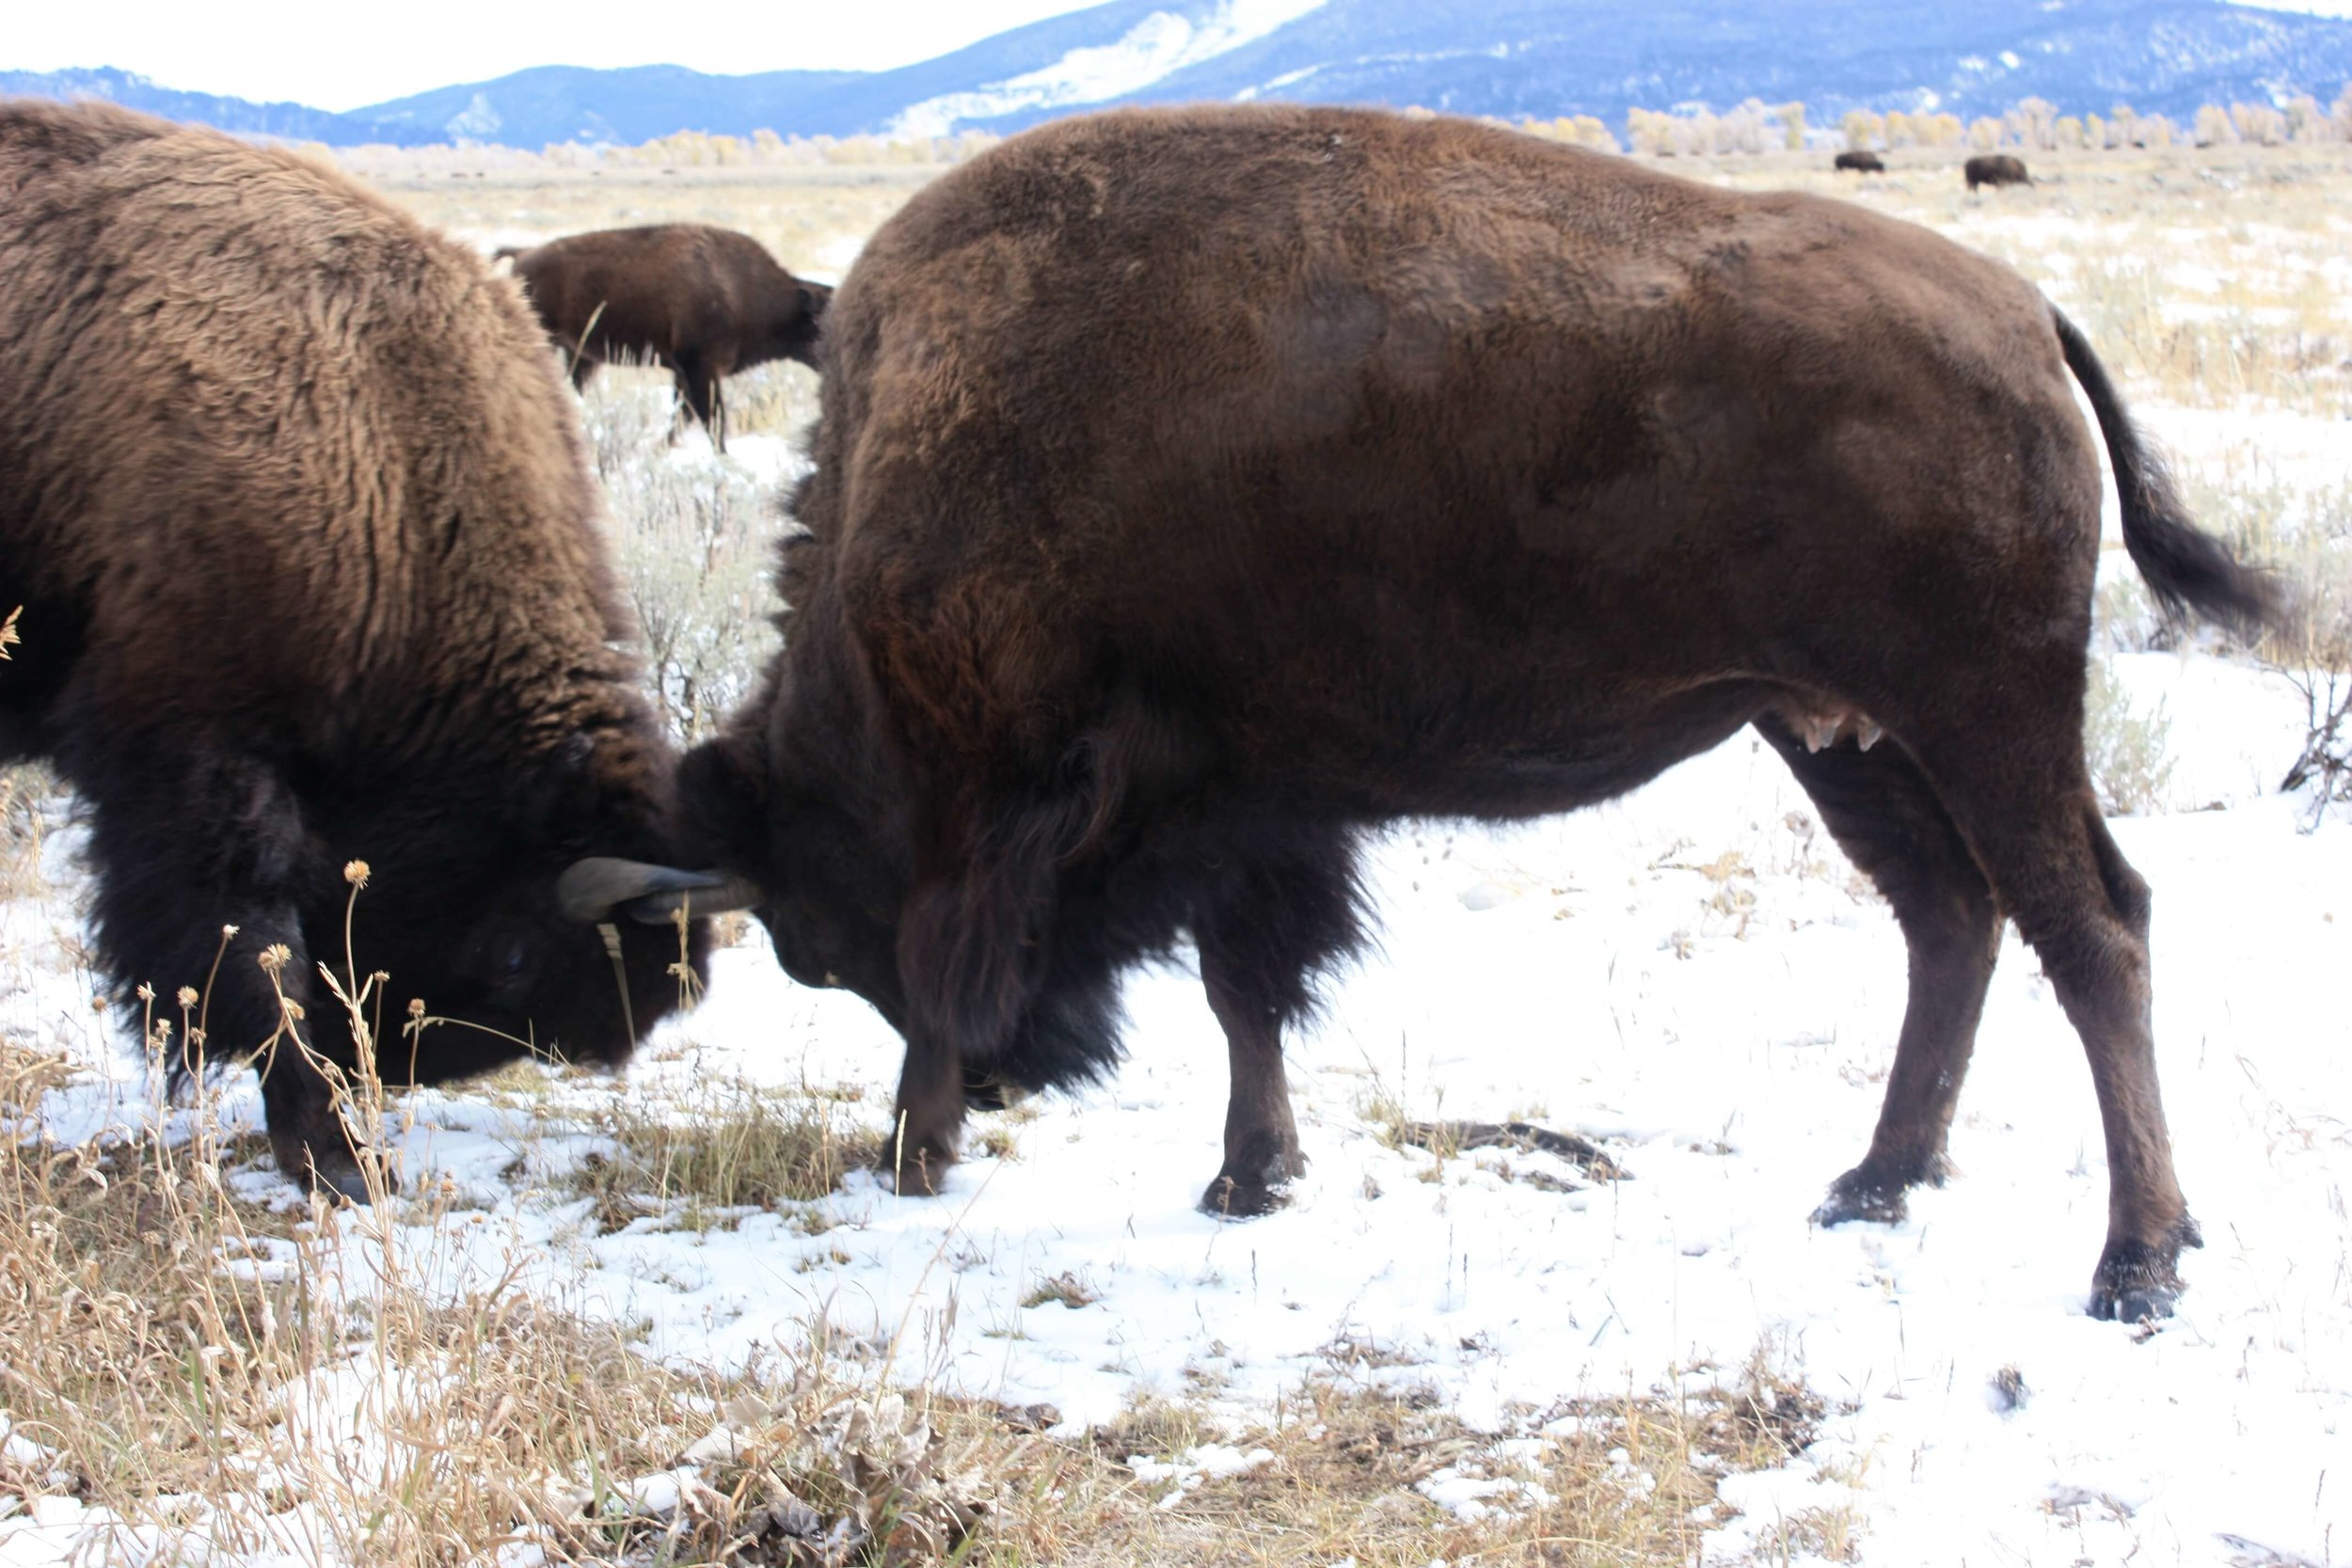 Head-butting bison